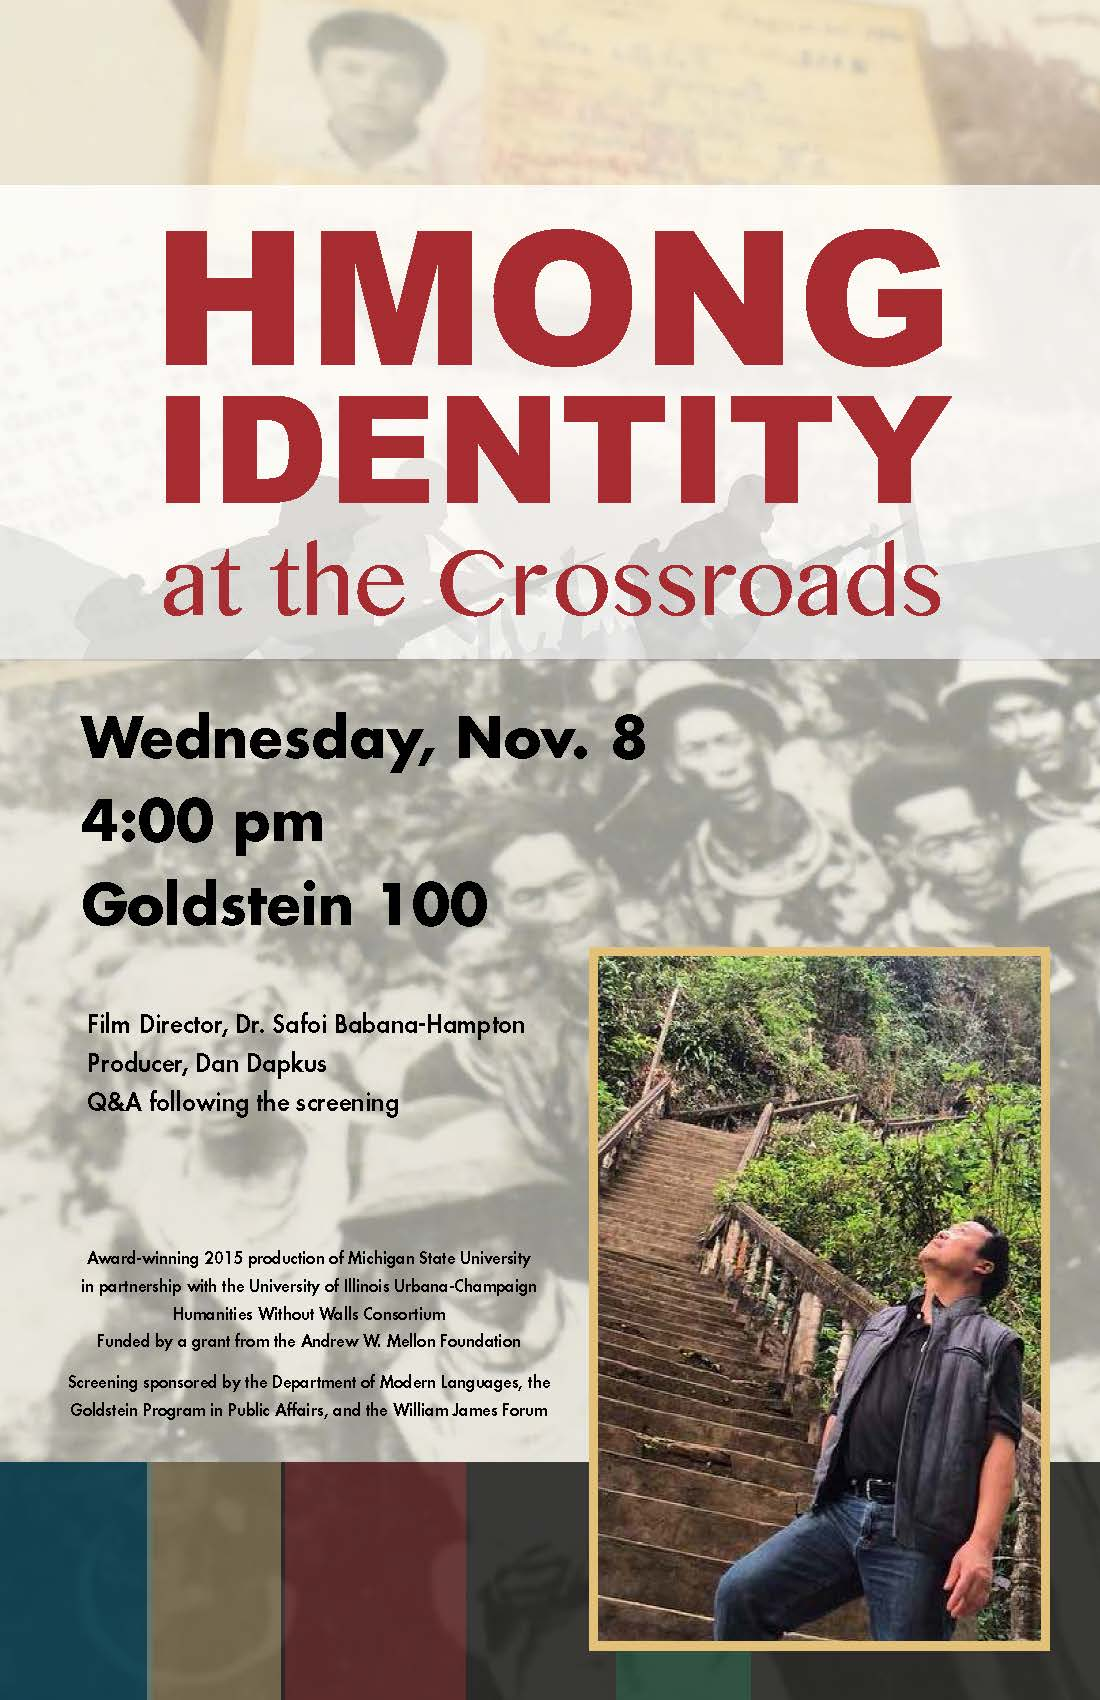 Film Screening: Hmong Identity at the Crossroads followed by a Q & A with Film Director and Prod